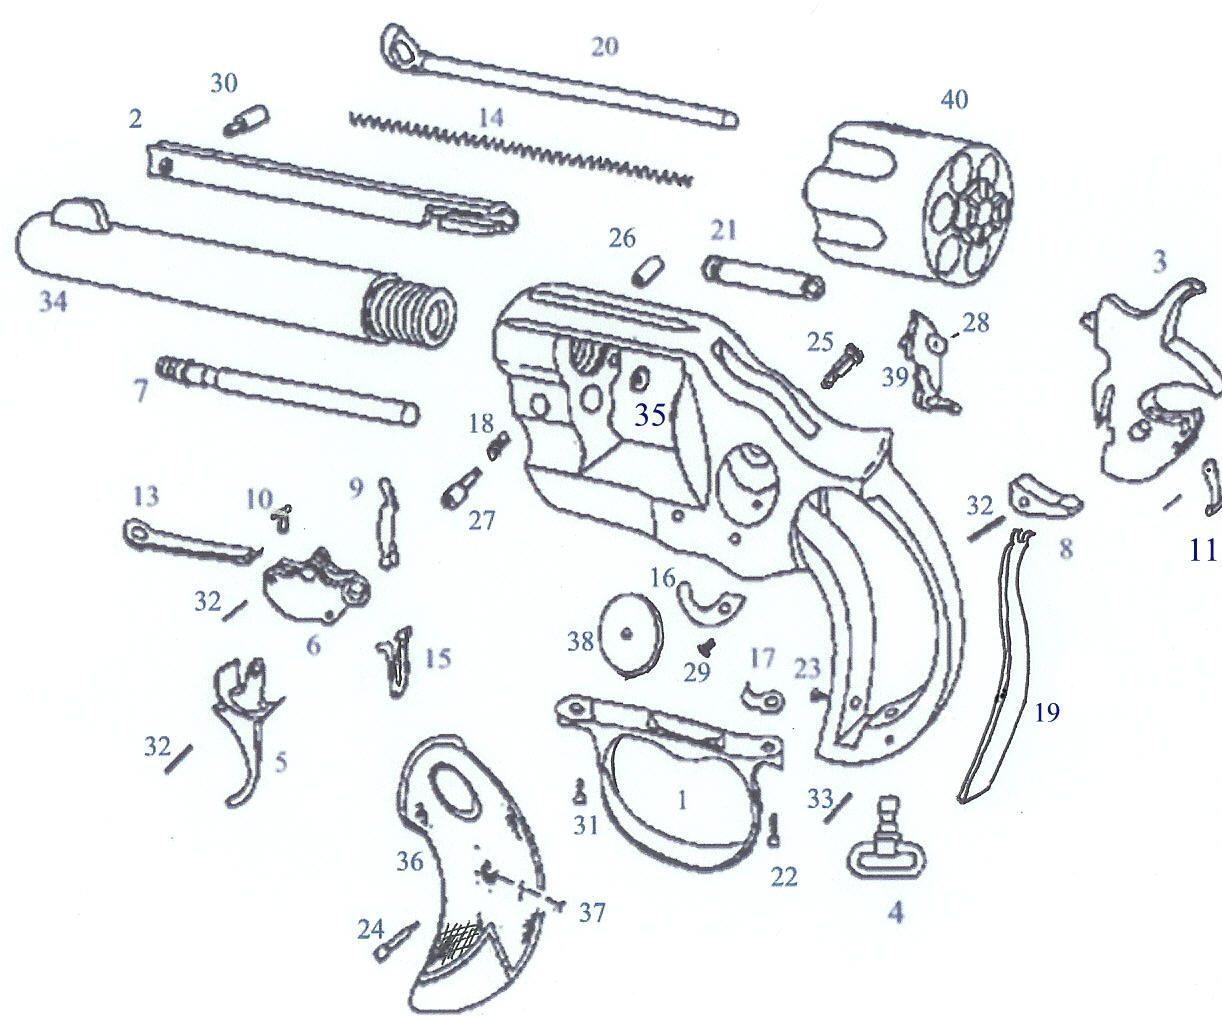 Racor 500 Exploded Parts Diagram